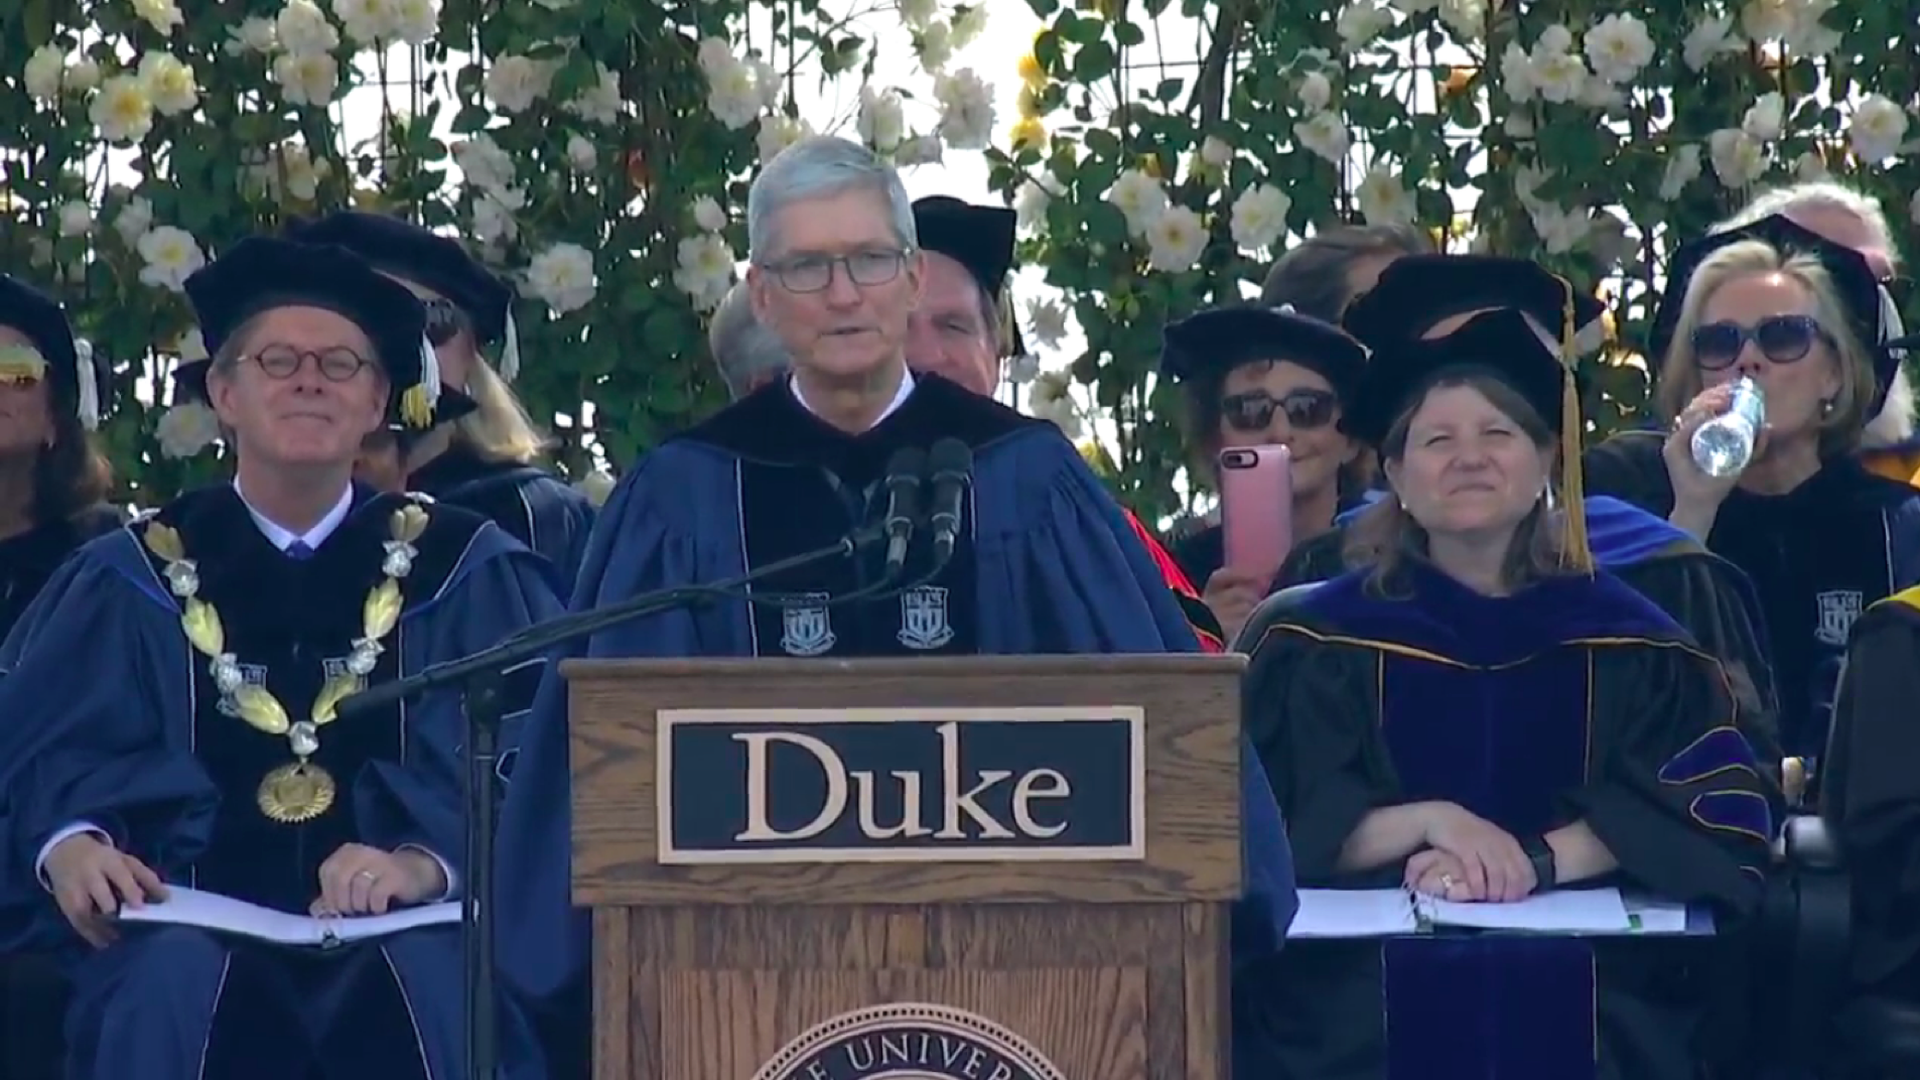 Apple CEO Tim Cook speaks at Duke University